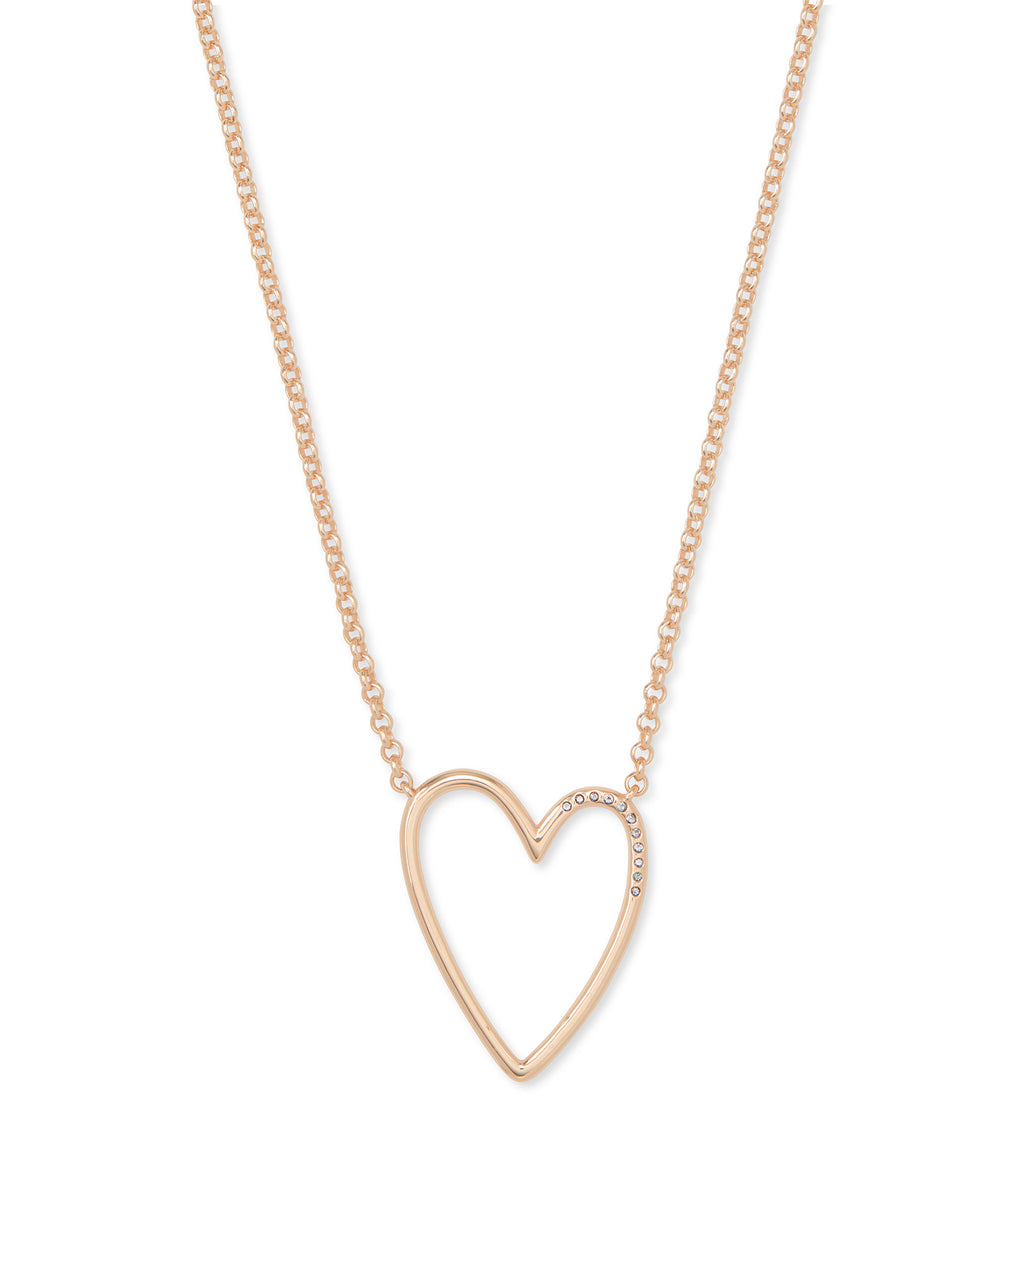 Ansley Pendant Necklace in Rose Gold